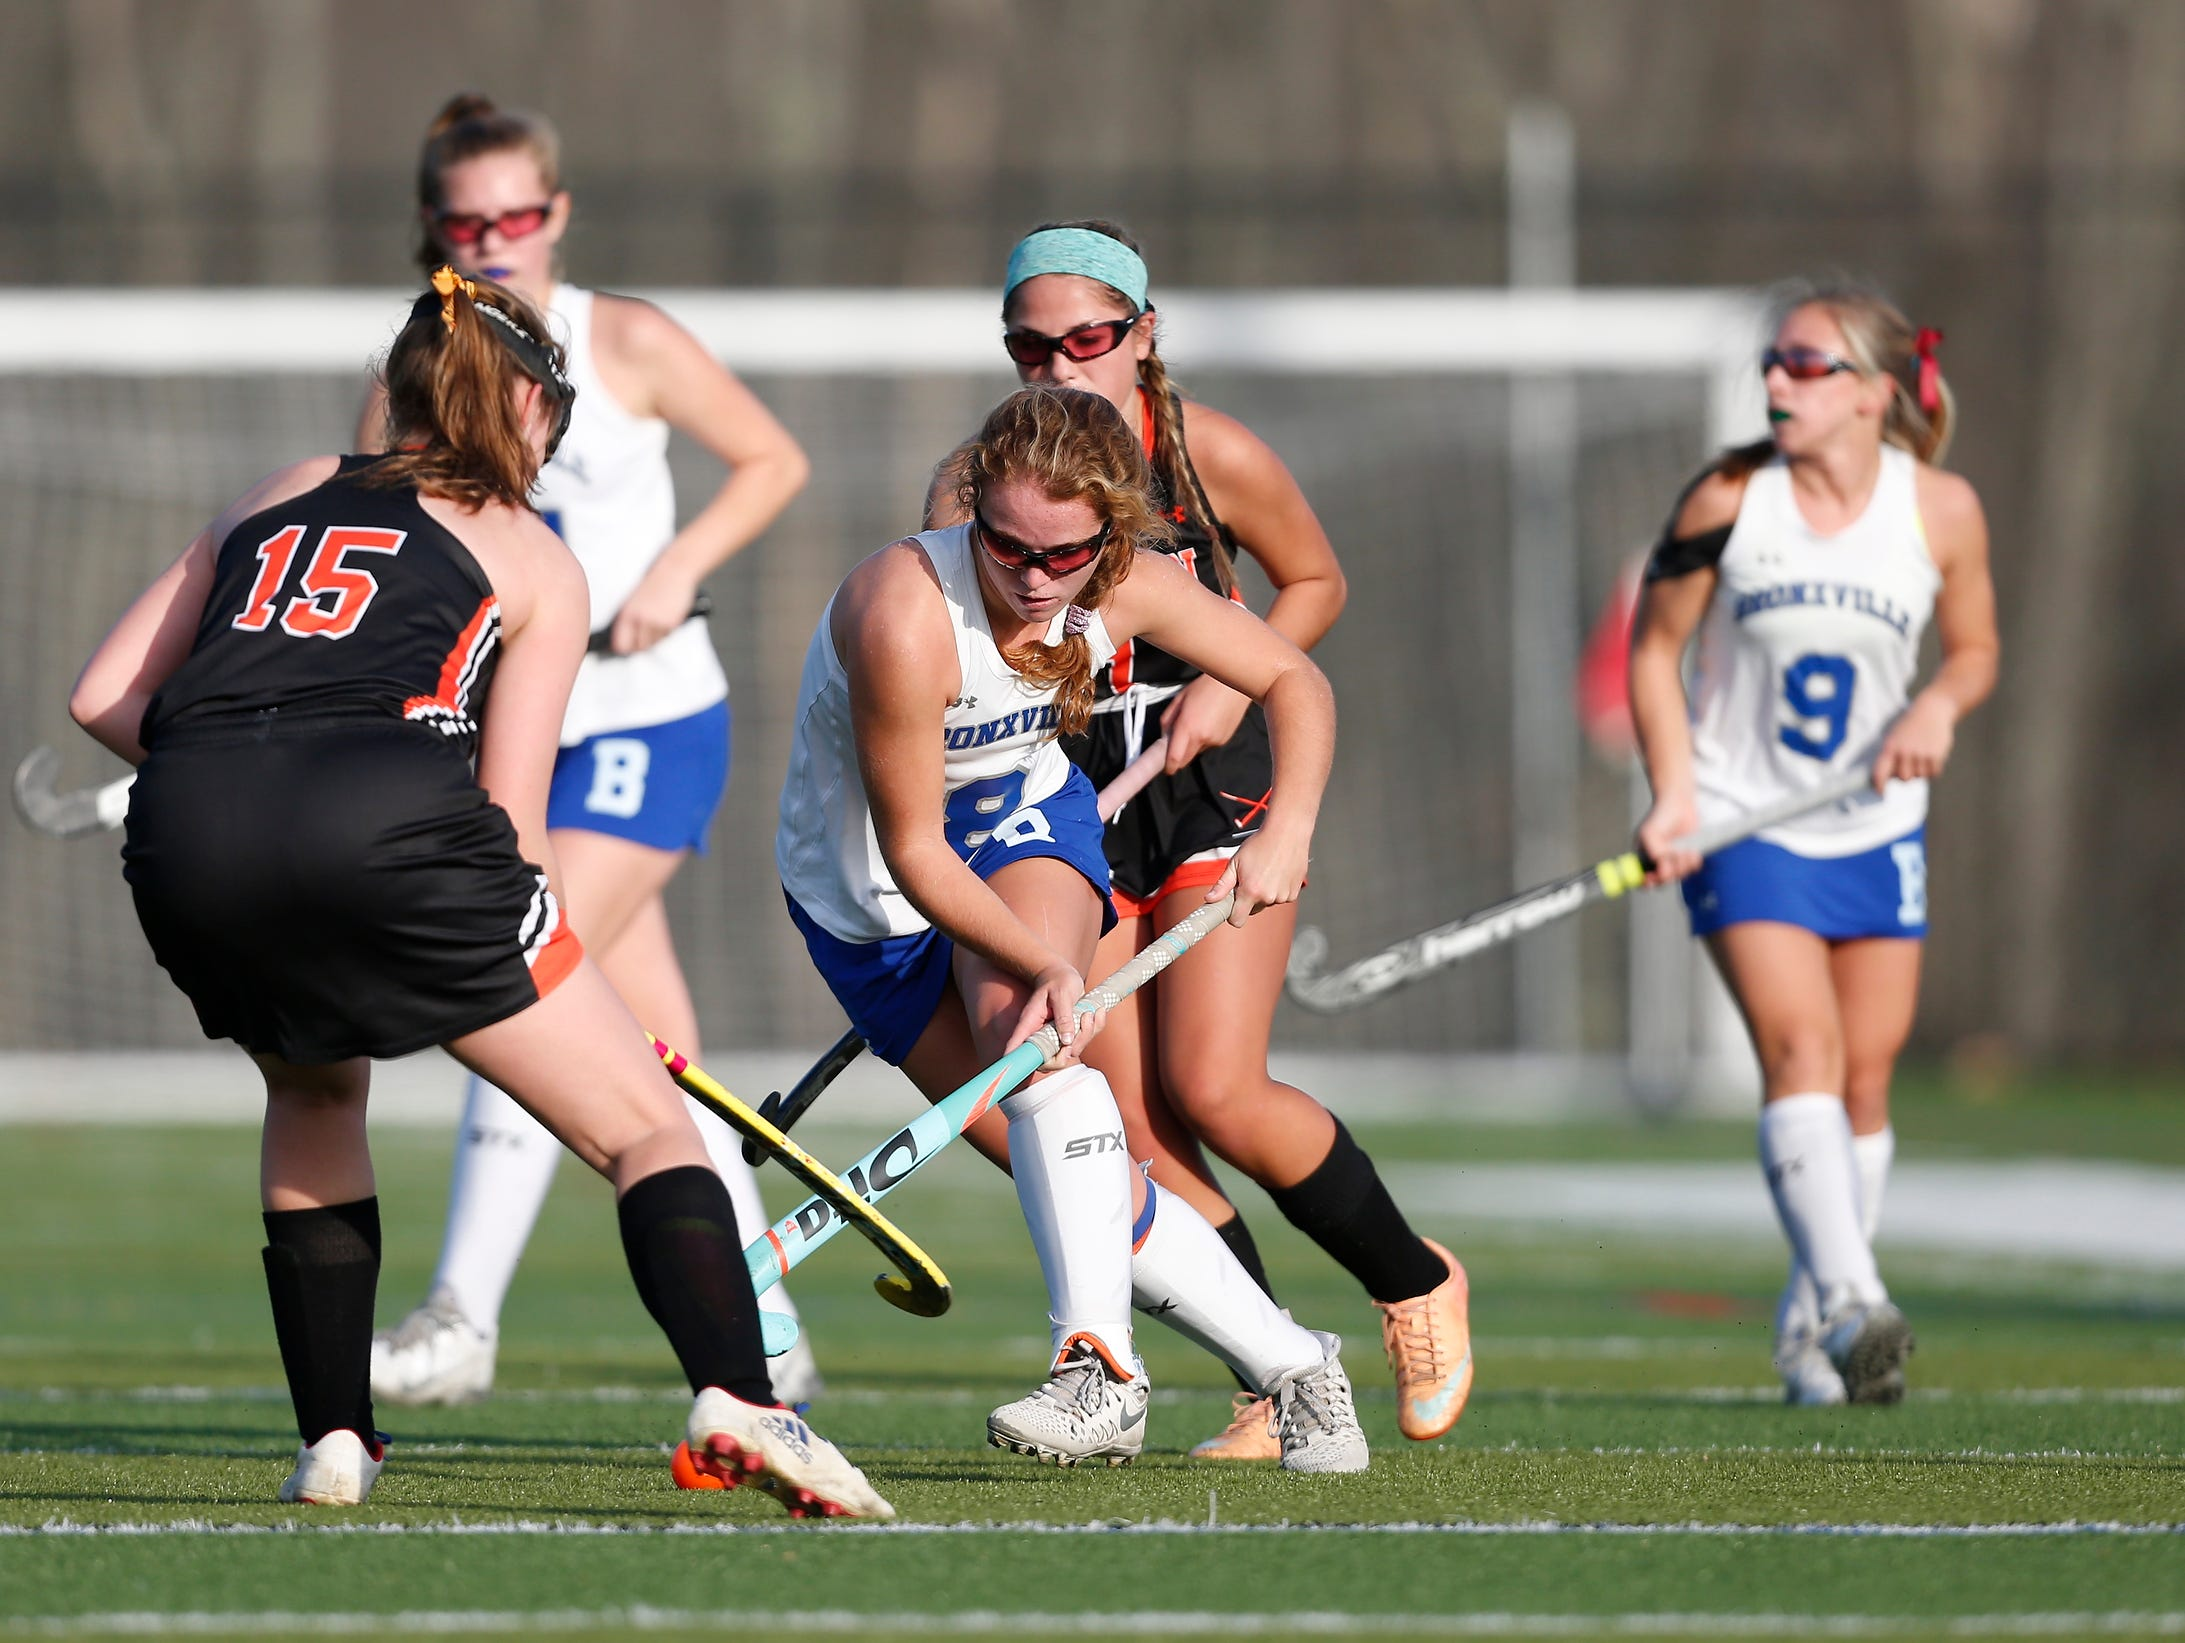 Bronxville's Ellie Walsh (8) works the ball past Croton's Emily Kehoe (15) during their 7-1 win in the Class C field hockey sectiion finals at Brewster High School on Tuesday, November 1, 2016.